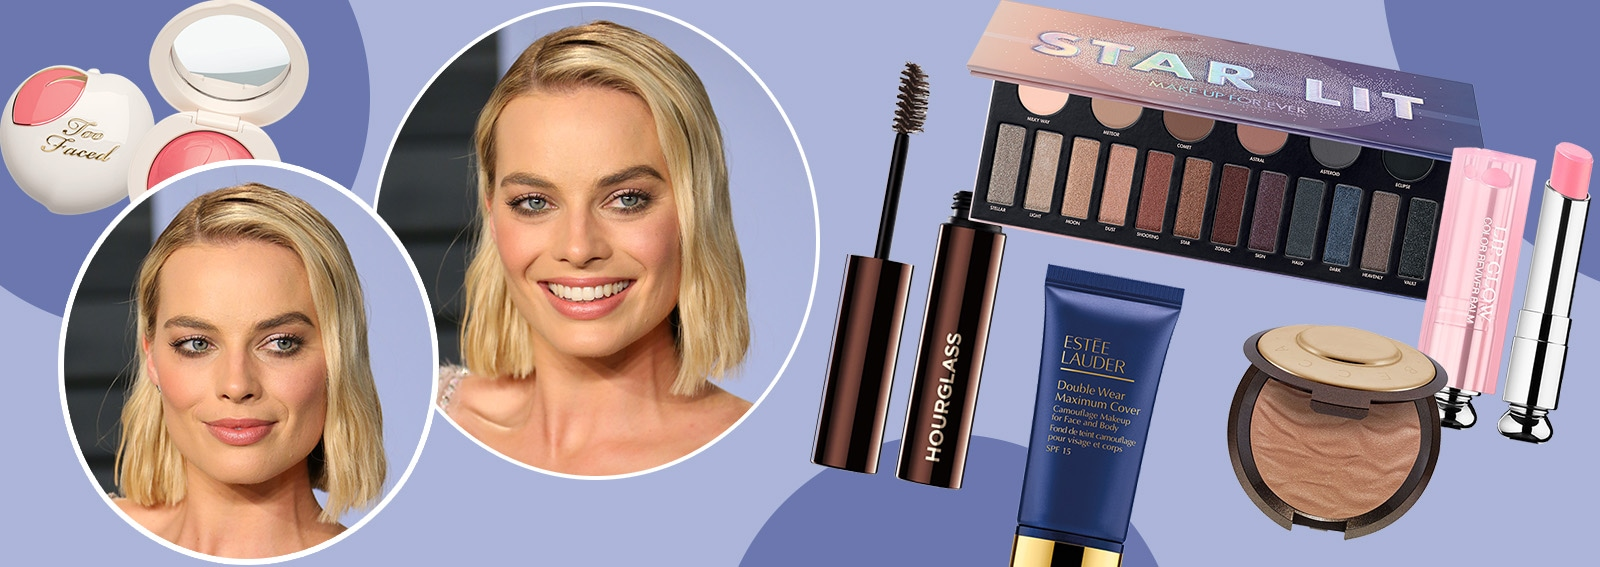 Copia il look naturale e luminoso di Margot Robbie